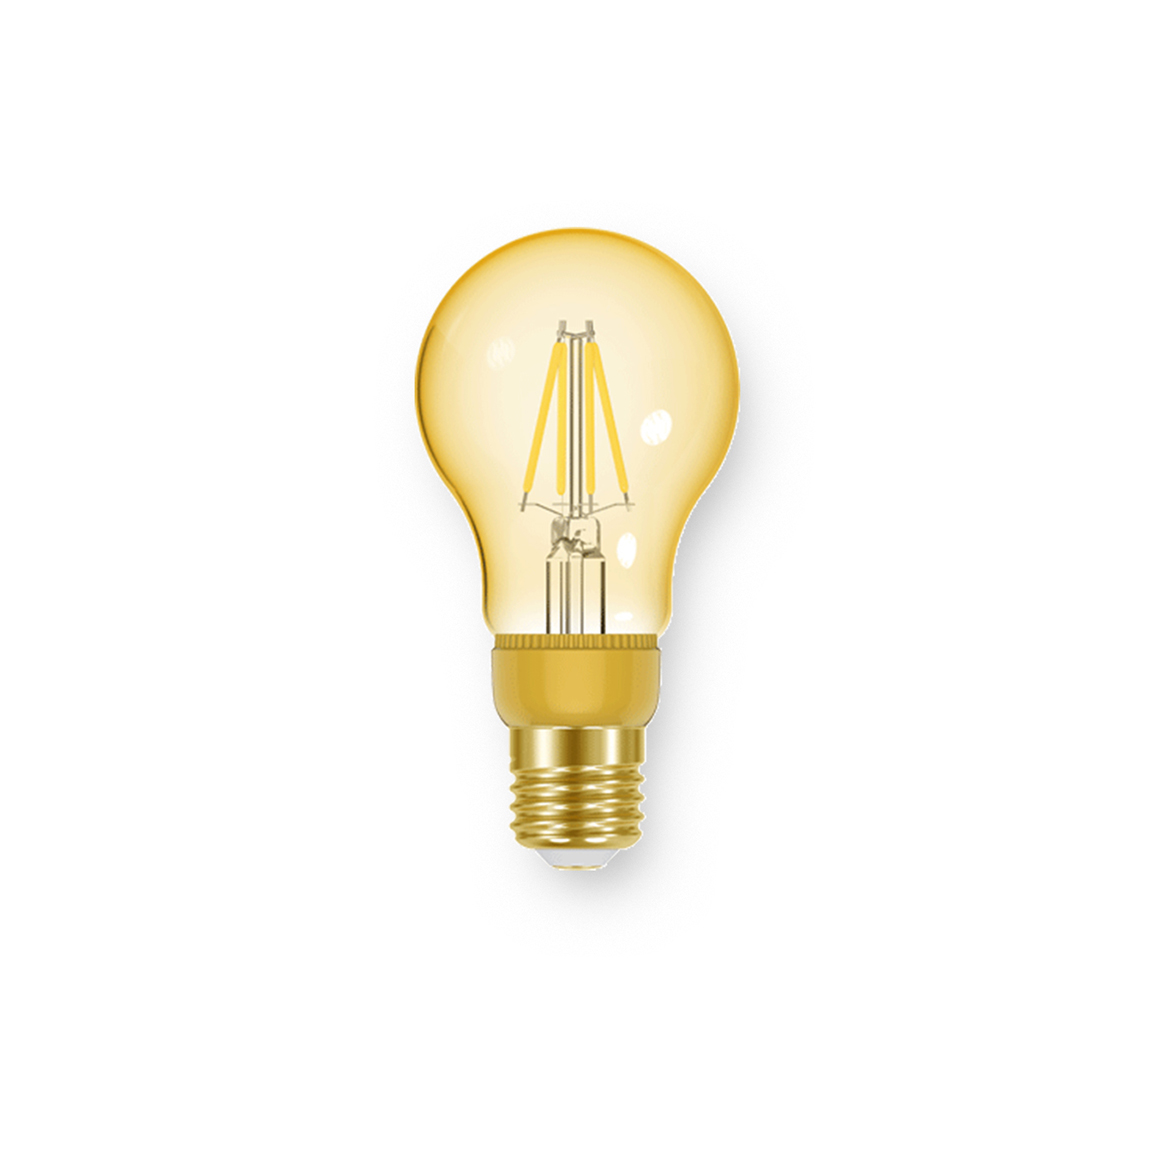 Filament A60 Spiral Vintage 350lm Dimmable E27